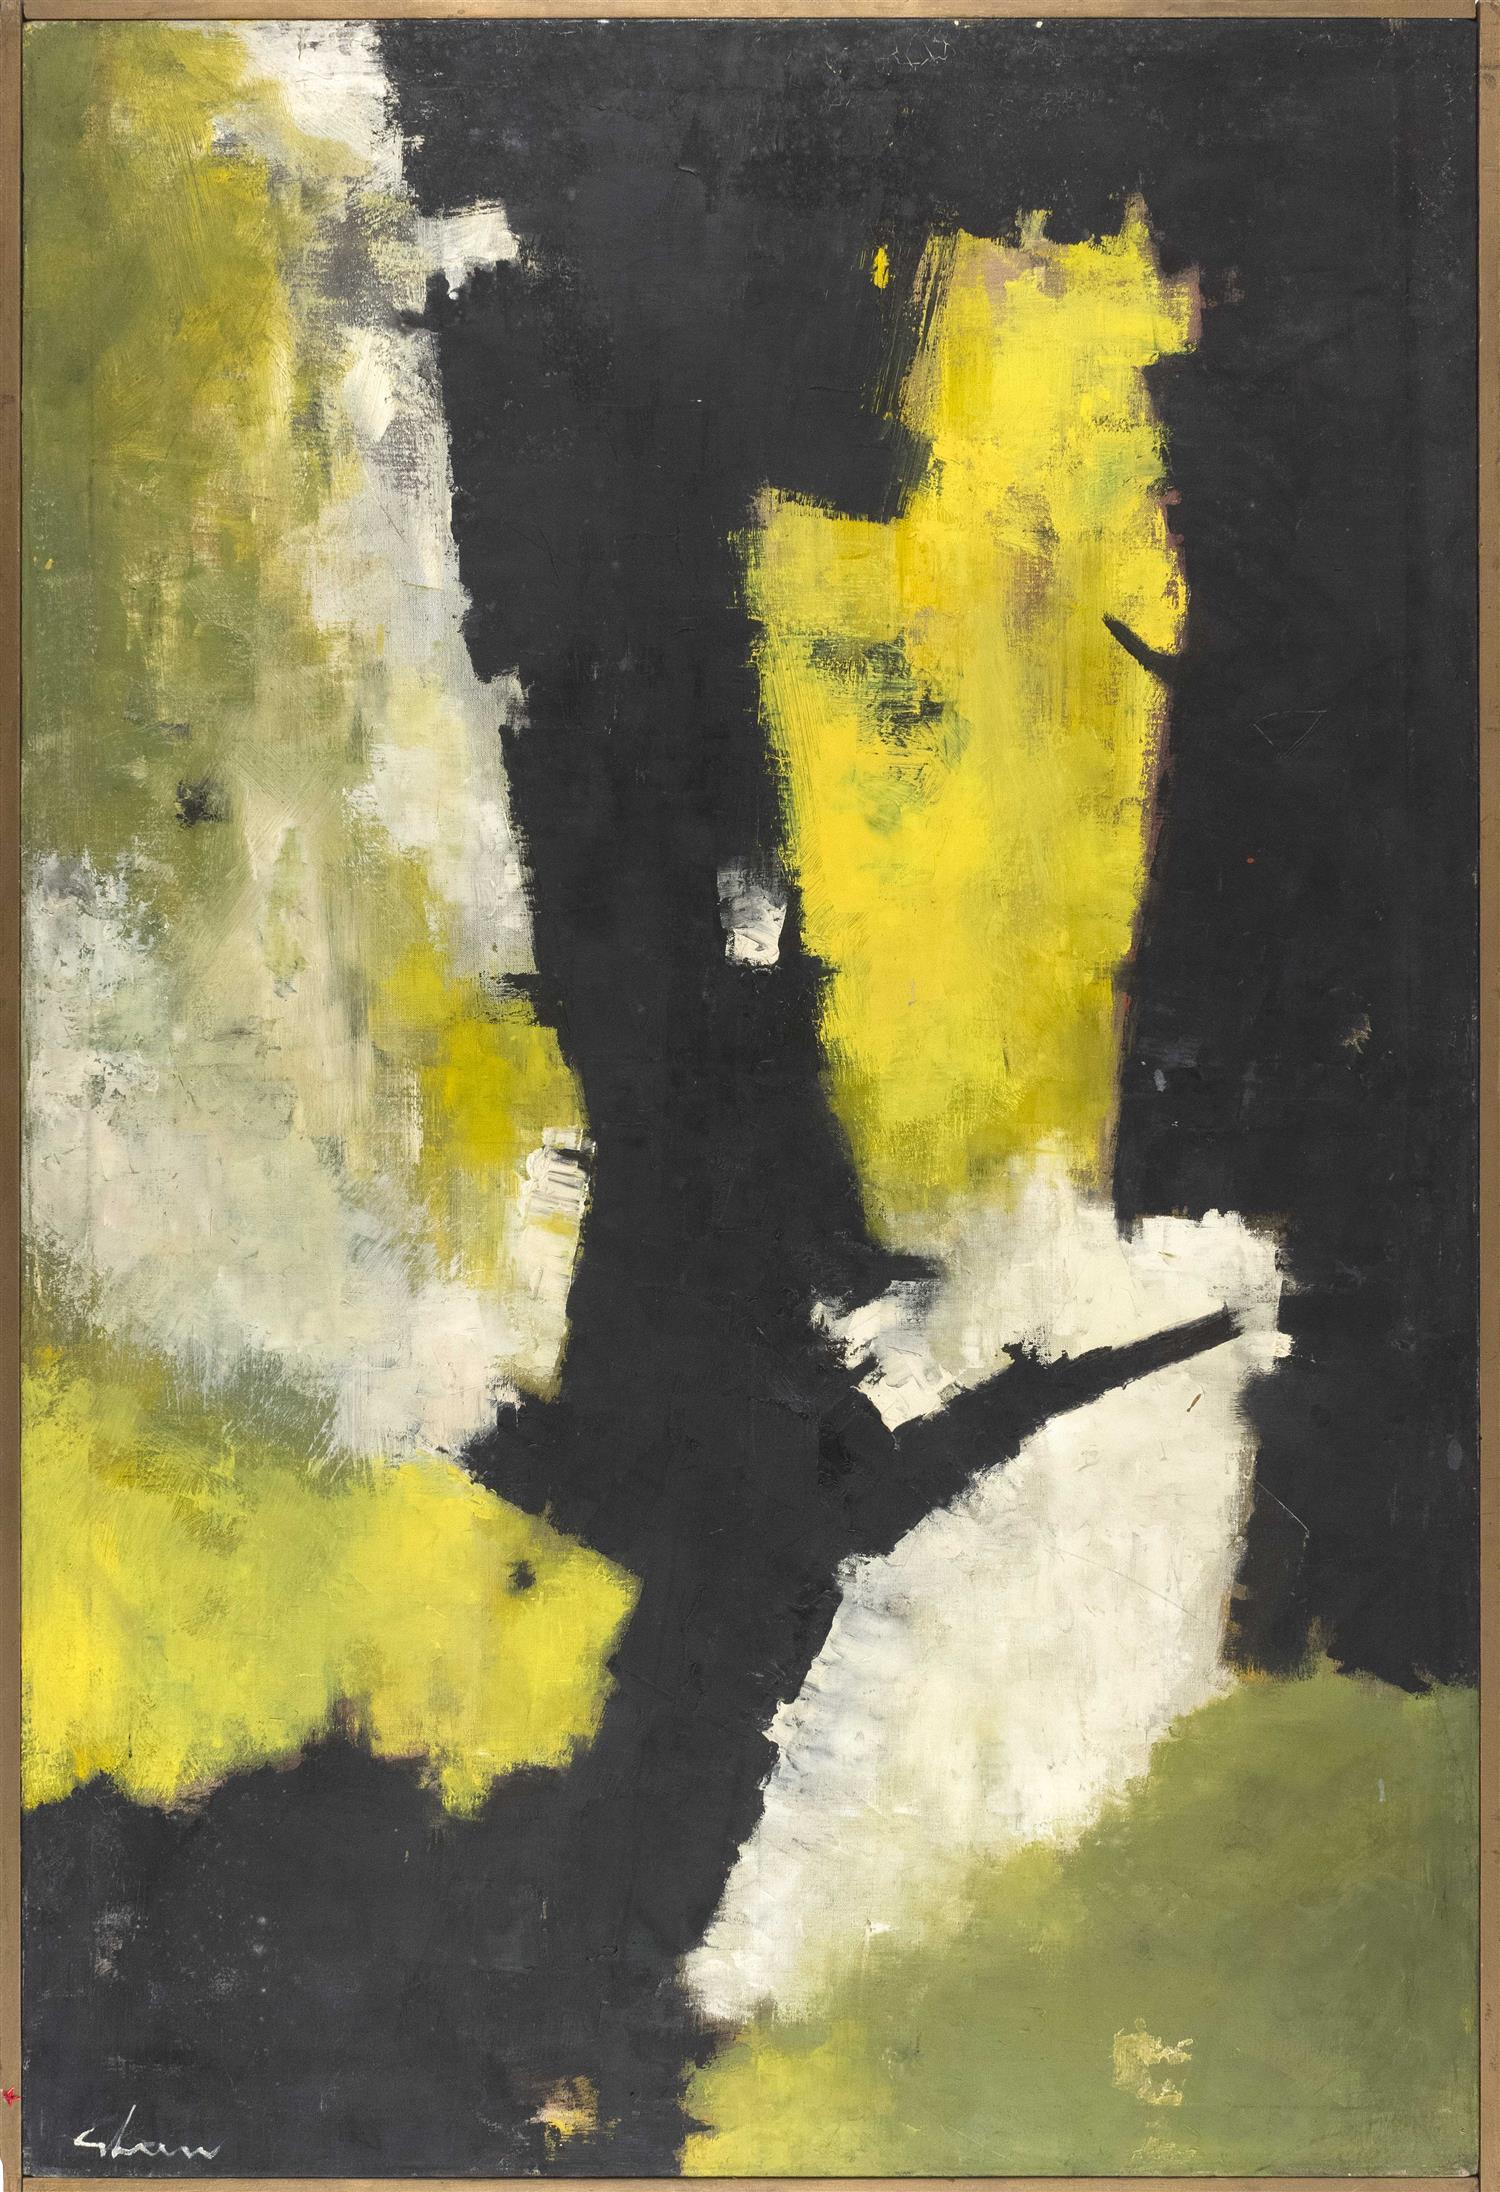 """CHARLES GREEN SHAW, New York, 1892-1974, """"Root Symbol 1959""""., Oil on canvas, 48"""" x 32"""". Framed 50"""" x 34""""."""